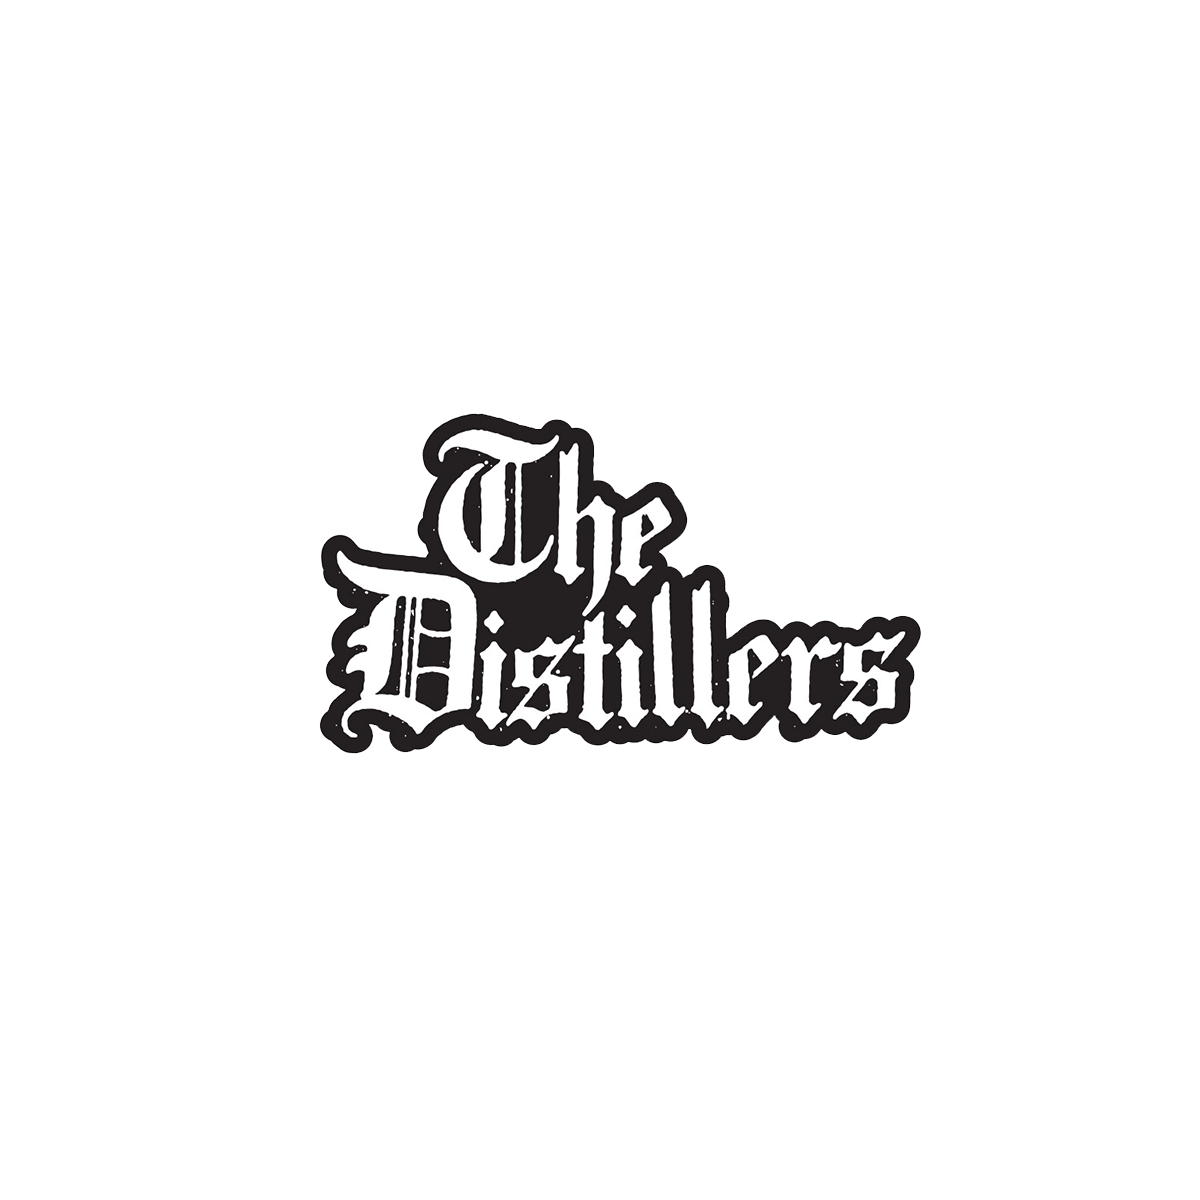 DISTILLERS LOGO STICKER - The Distillers